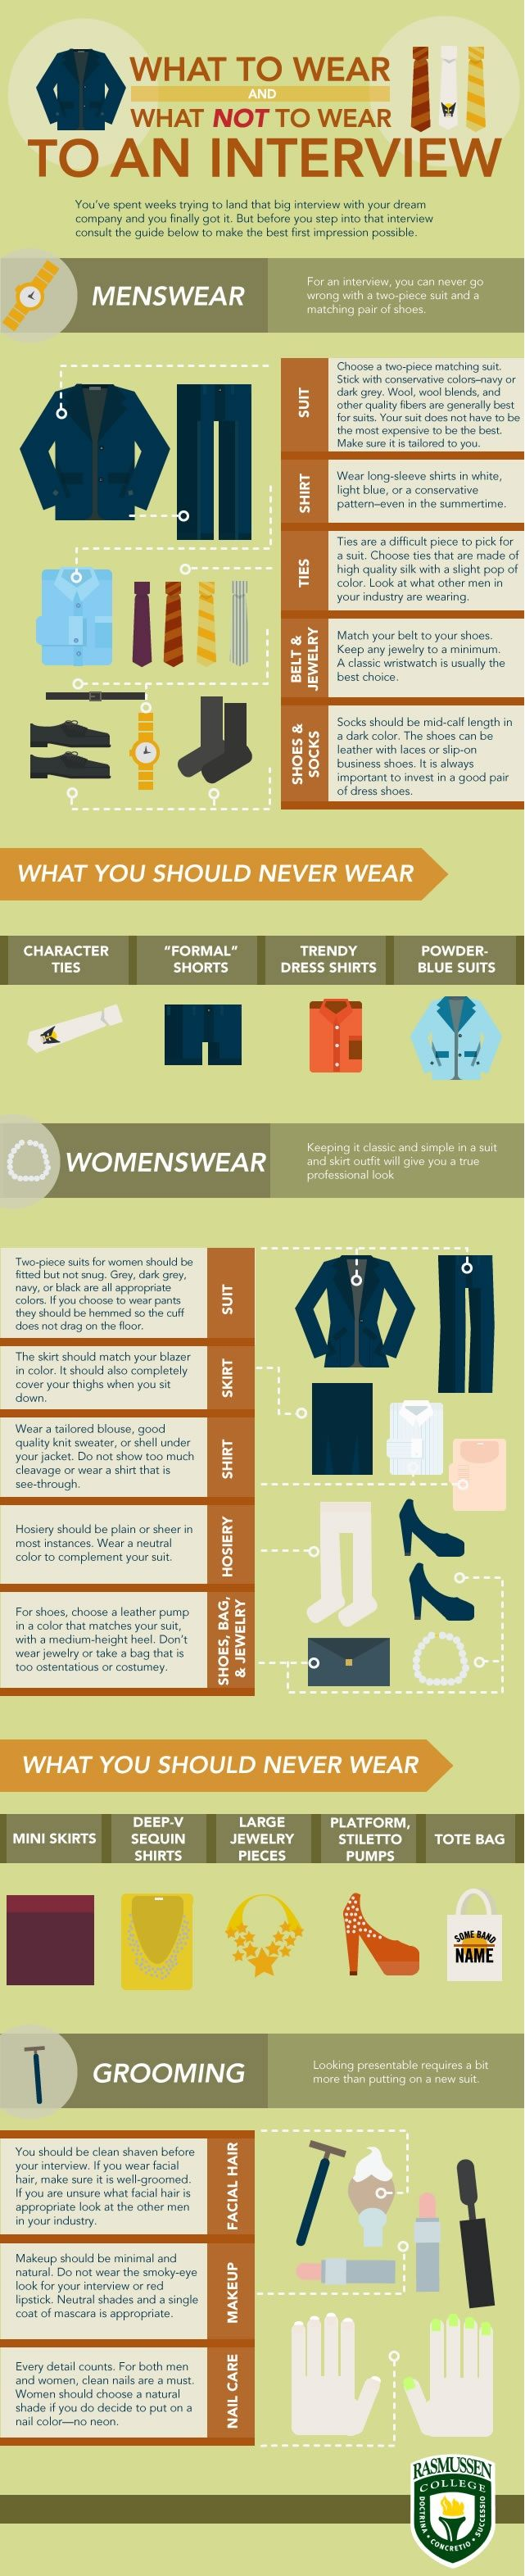 Interview: What To Wear